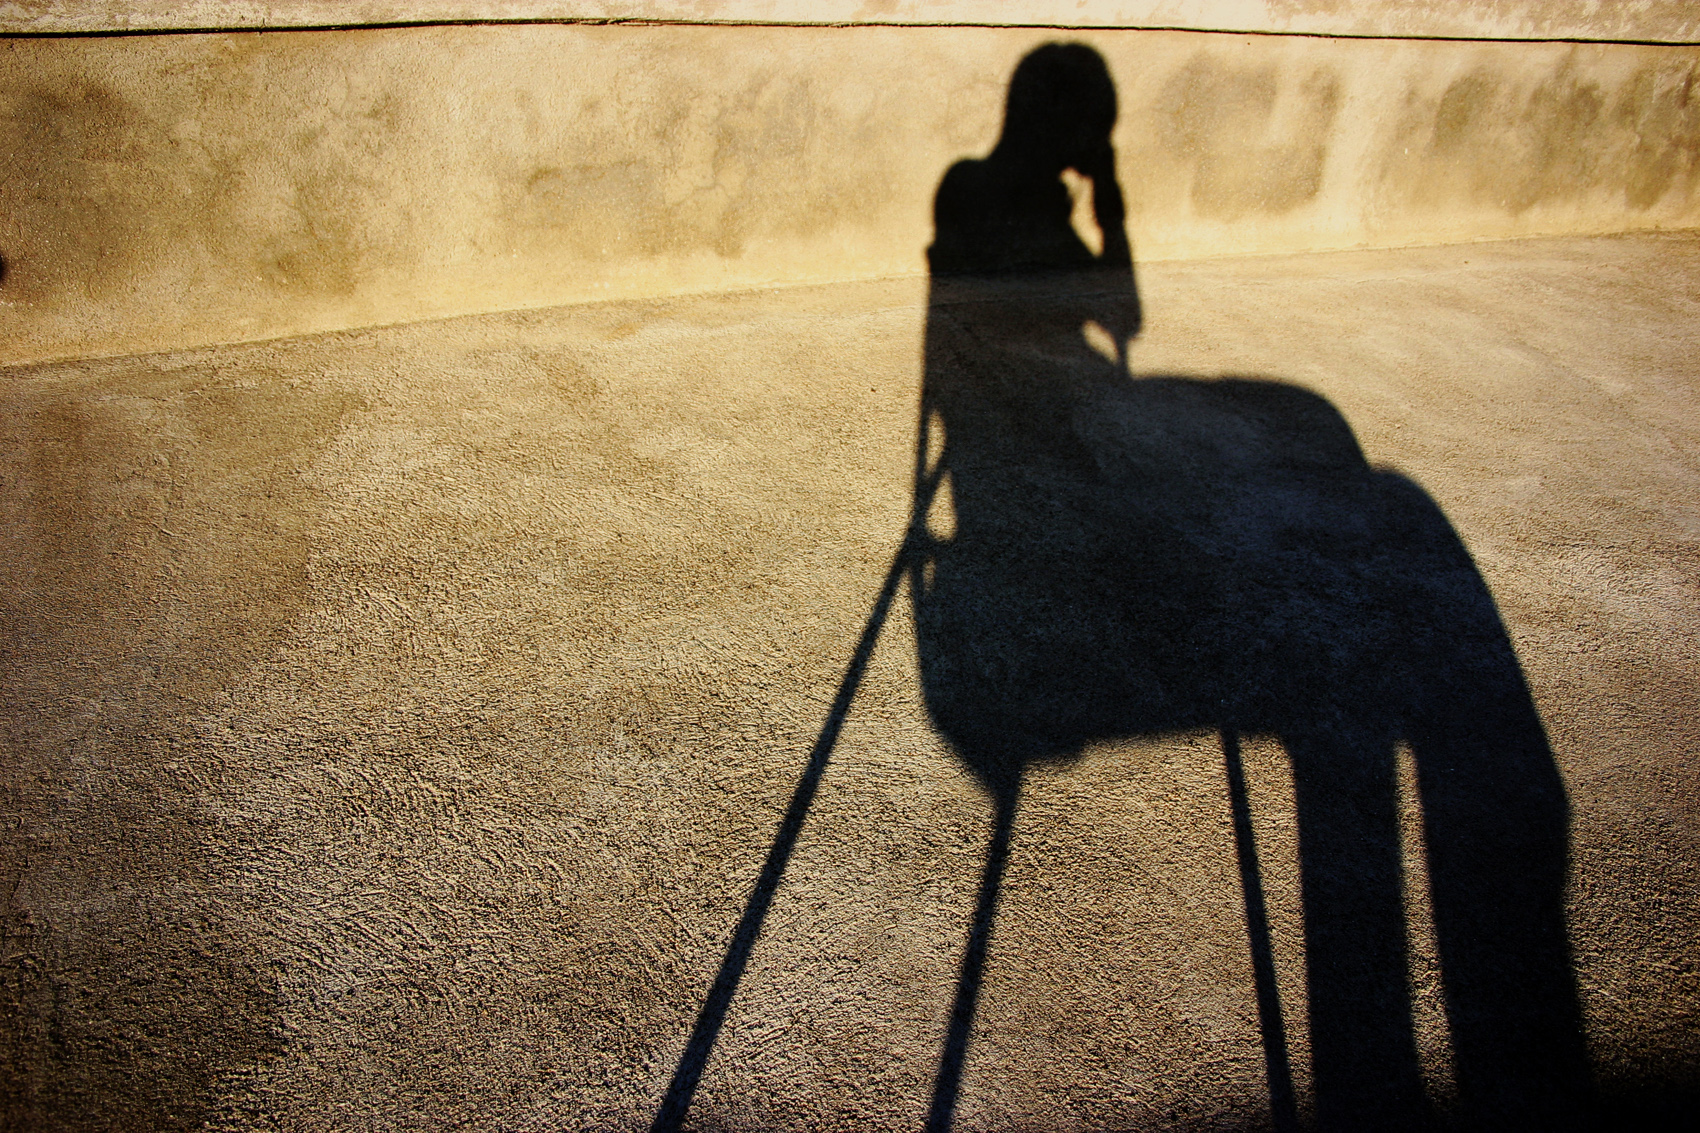 Shadow of a sitting person photo